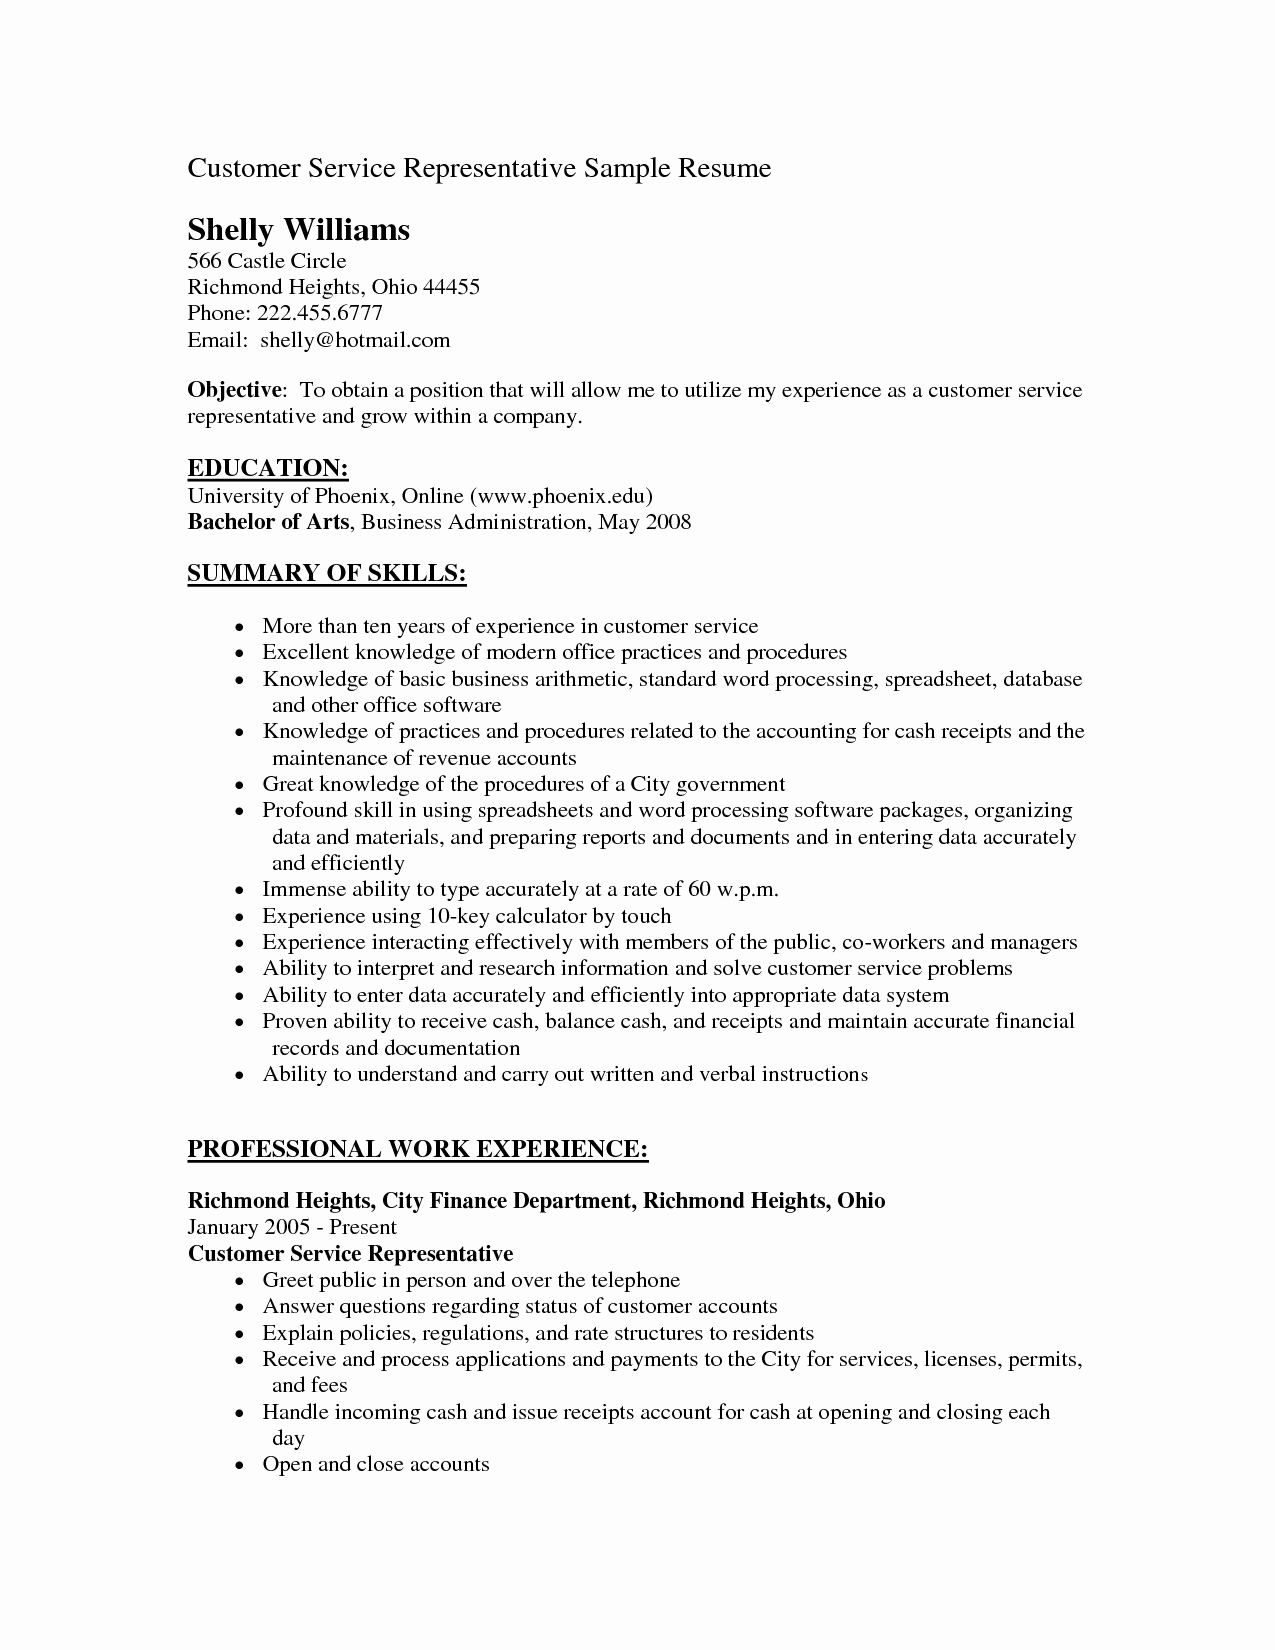 Resume Objective for Customer Service